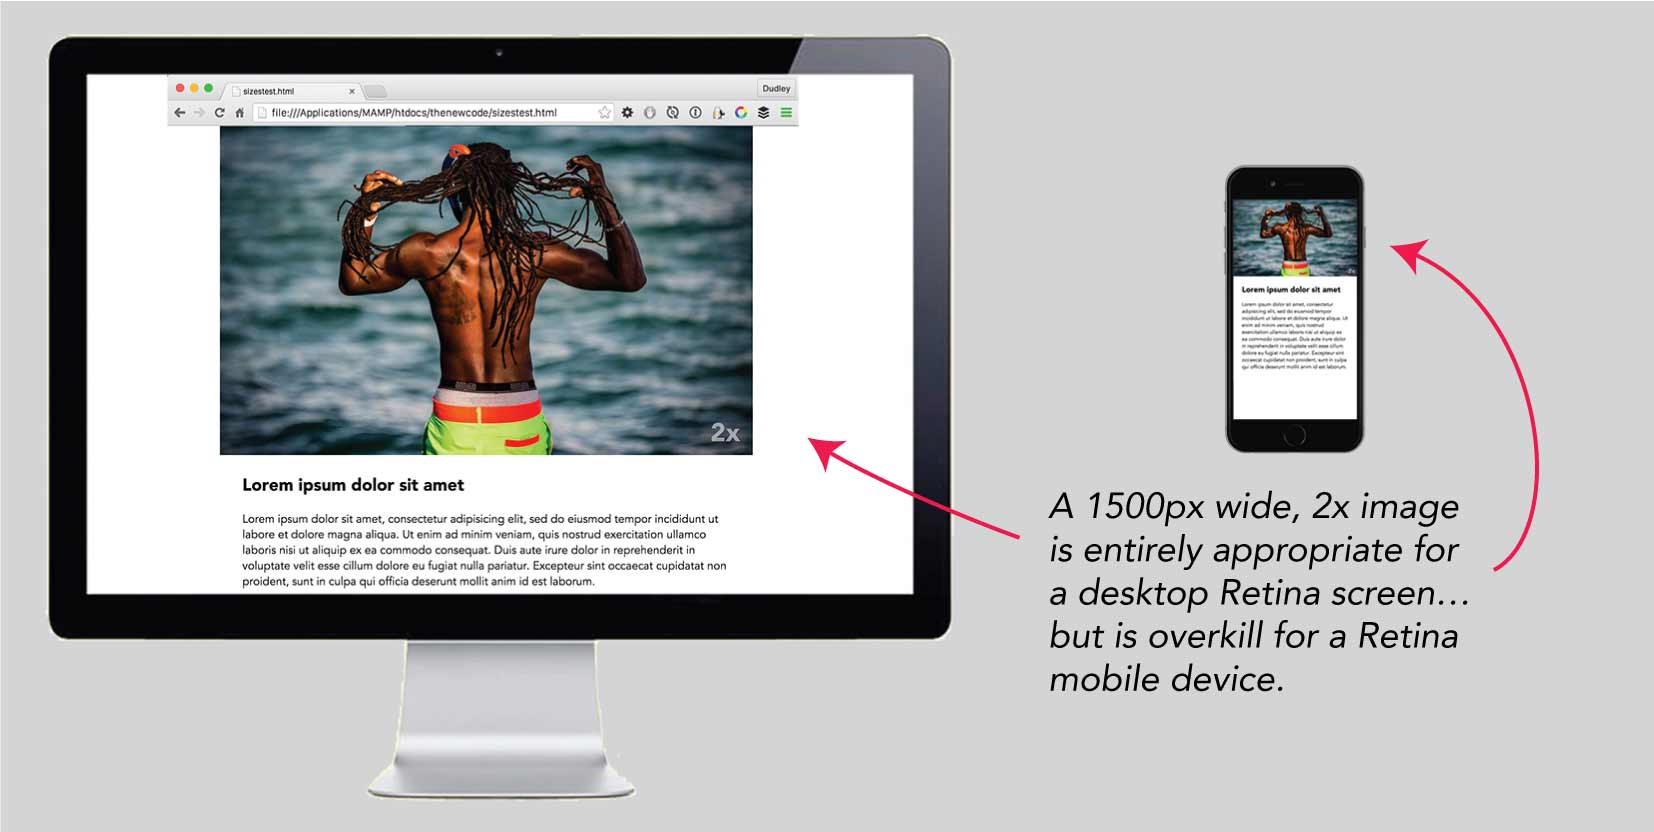 A 1500px wide, 2x image is entirely appropriate for a desktop Retina screen, but is overkill for a Retina mobile device.